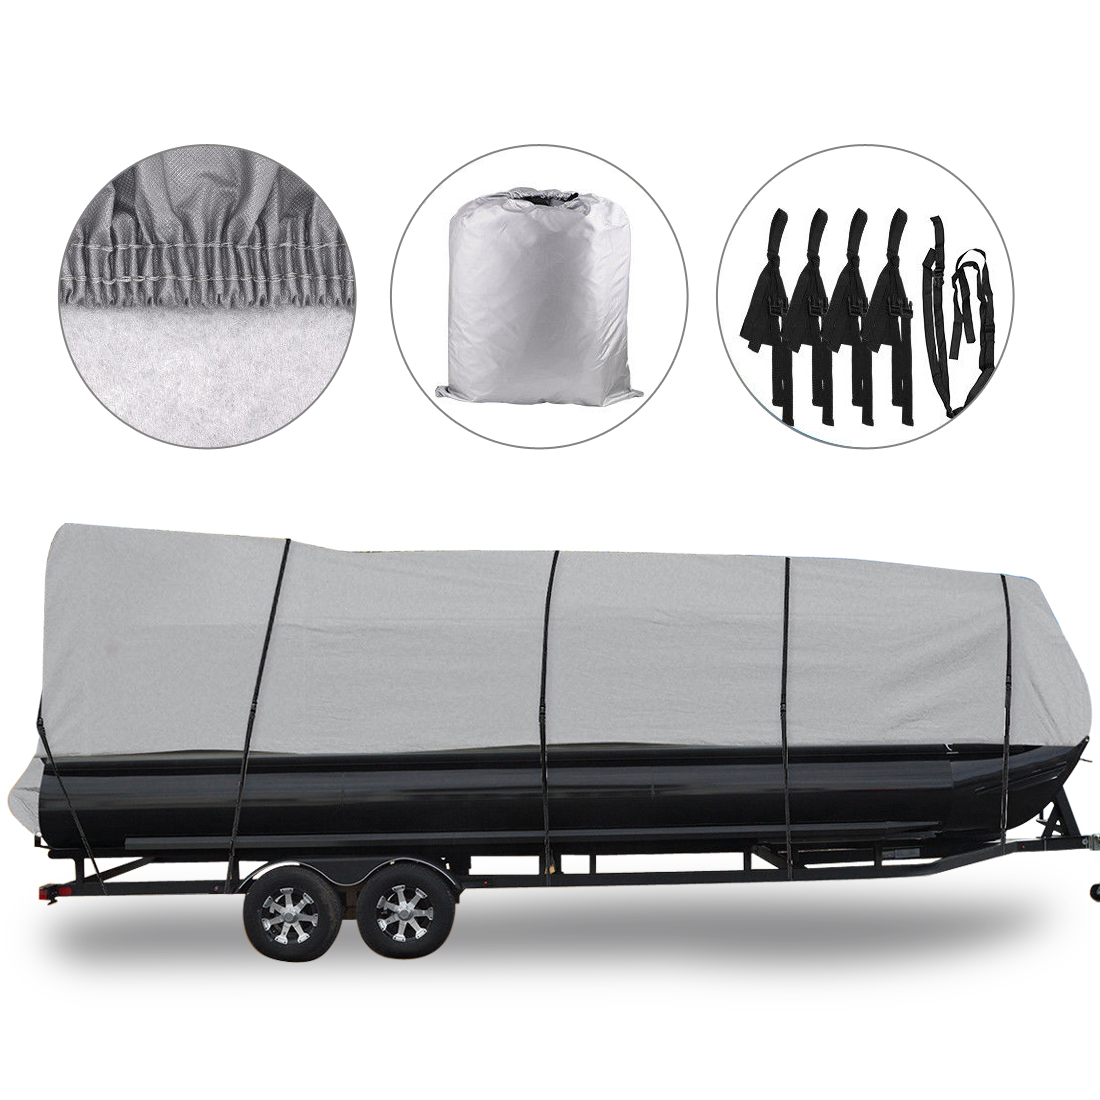 """Waterproof Boat Cover All Seasons Outdoor Protector Aluminium Film Composite Cotton Fits Quick Release Buckle Strap (Gray, Fit 21'-24'L x 102"""" Beam Width)"""